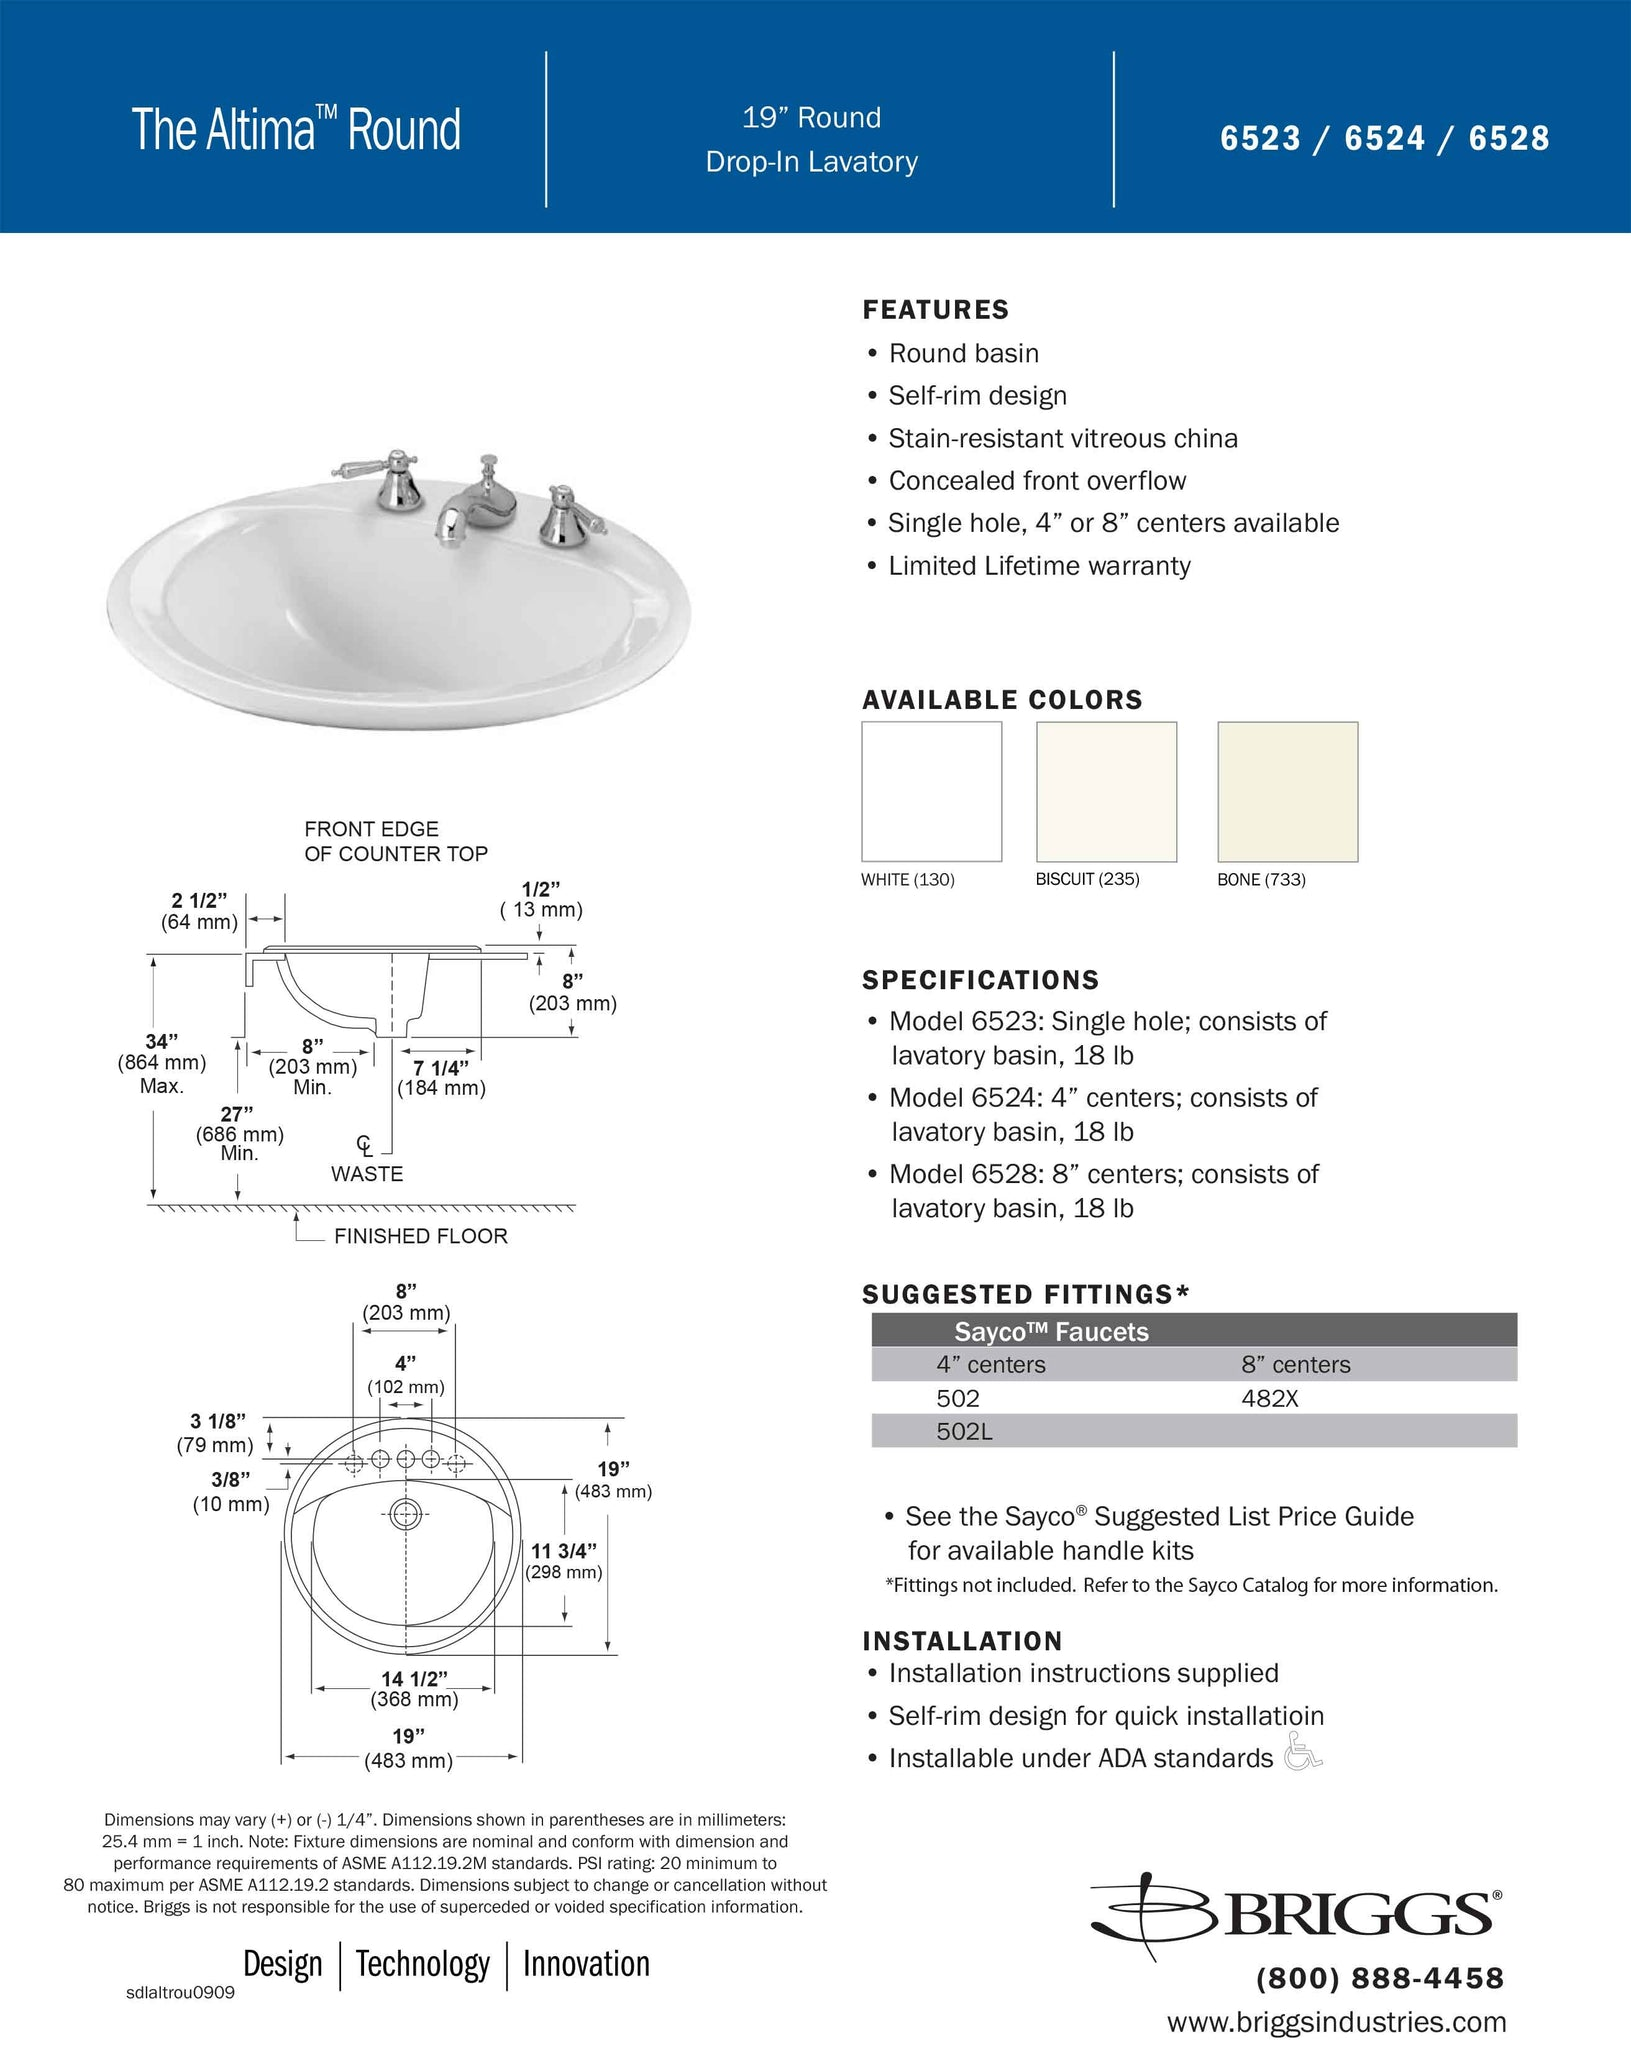 Submittal Sheet Briggs Altima Drop-in Sink